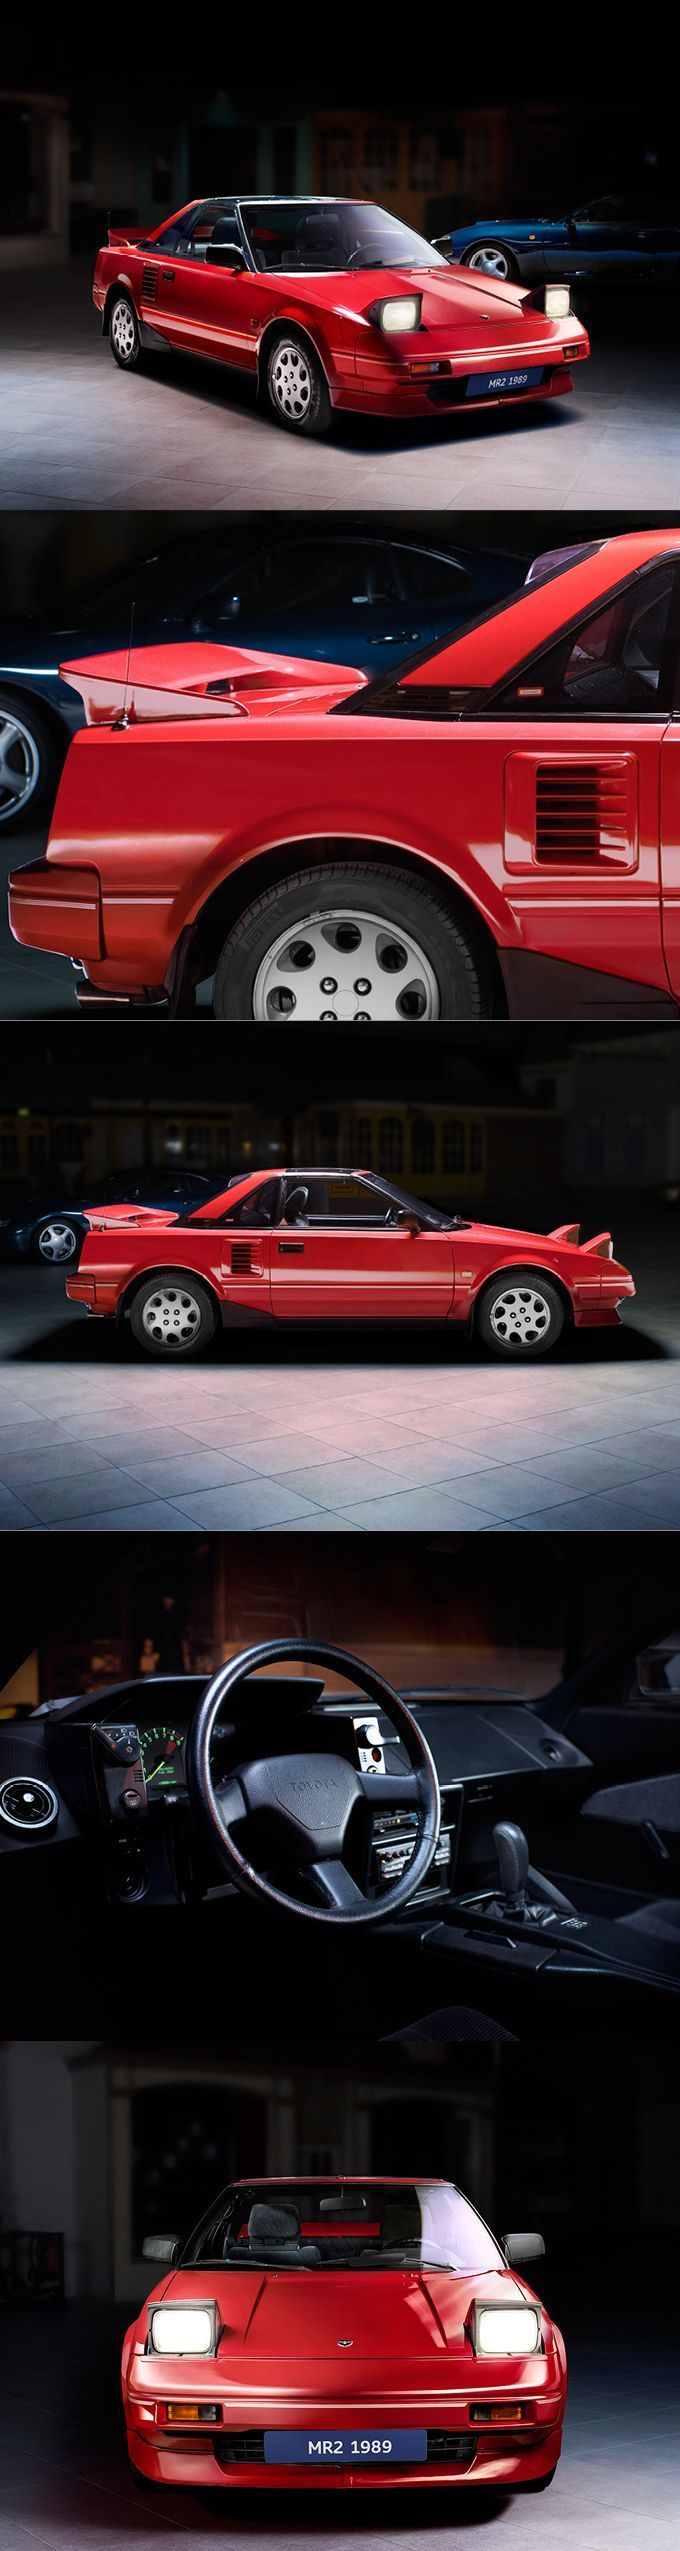 1989 Toyota MR2 / Japan / red / 17-302 #toyotavintagecars #toyotaclassiccars